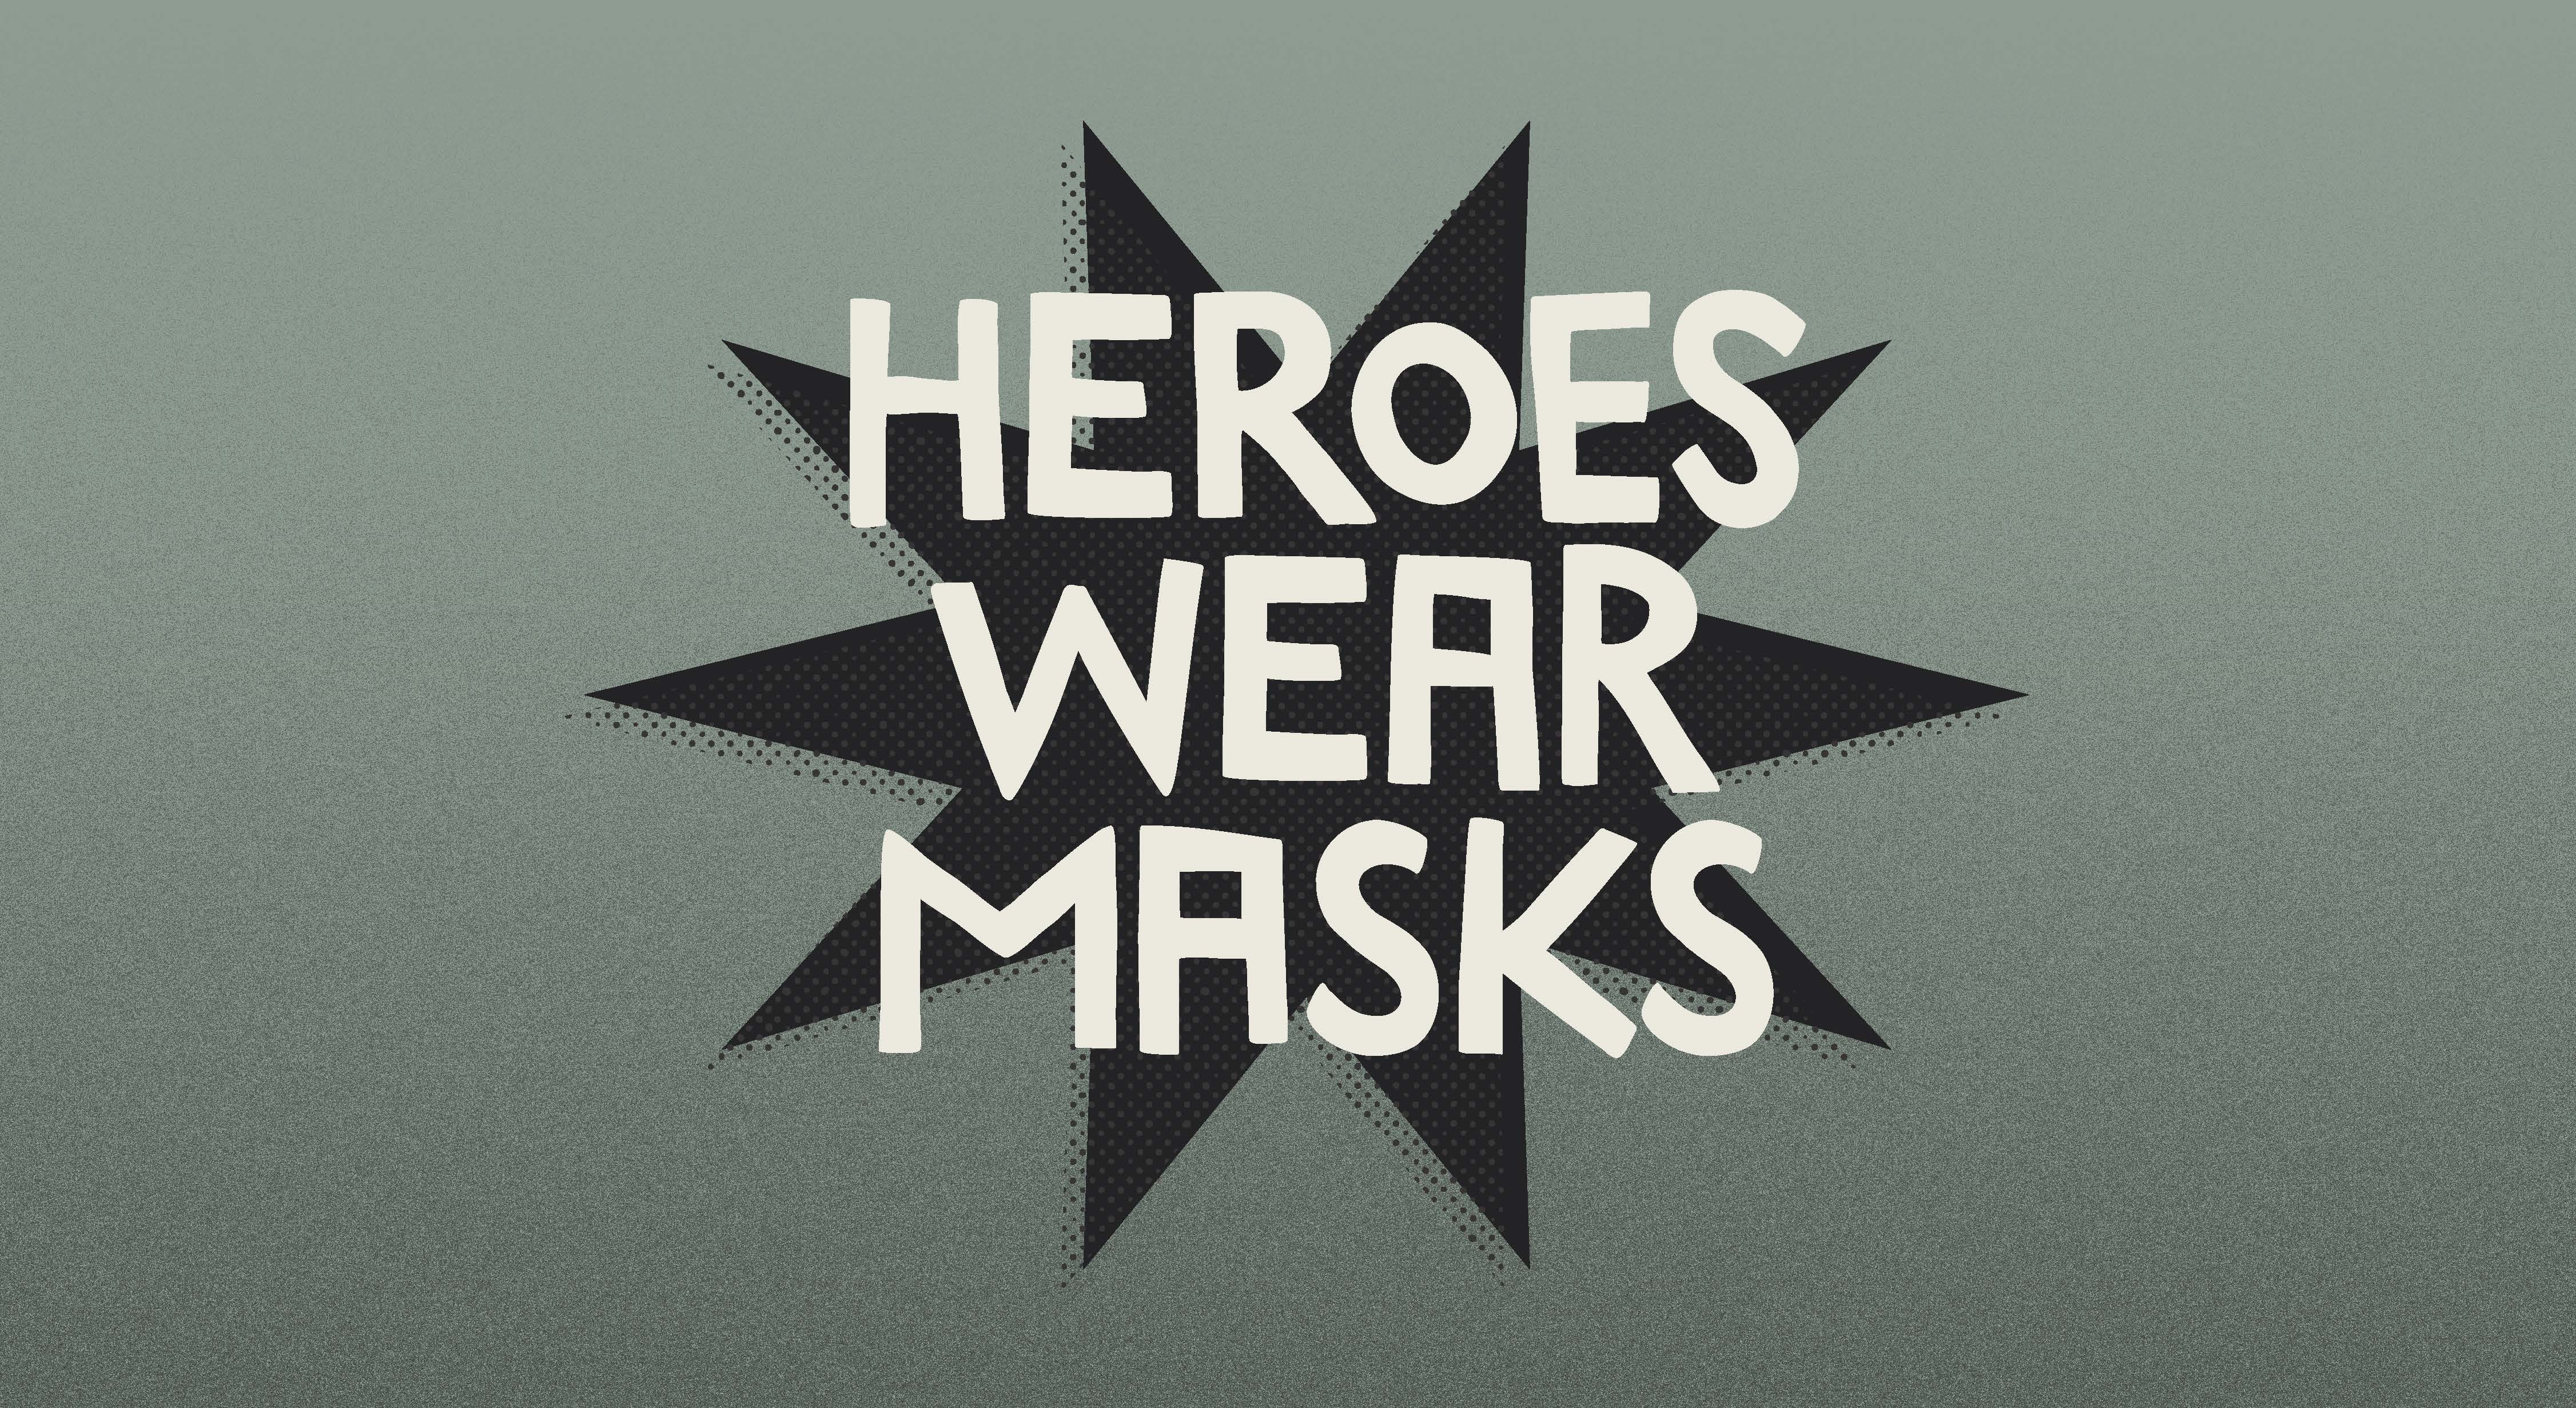 Heroes wear masks.